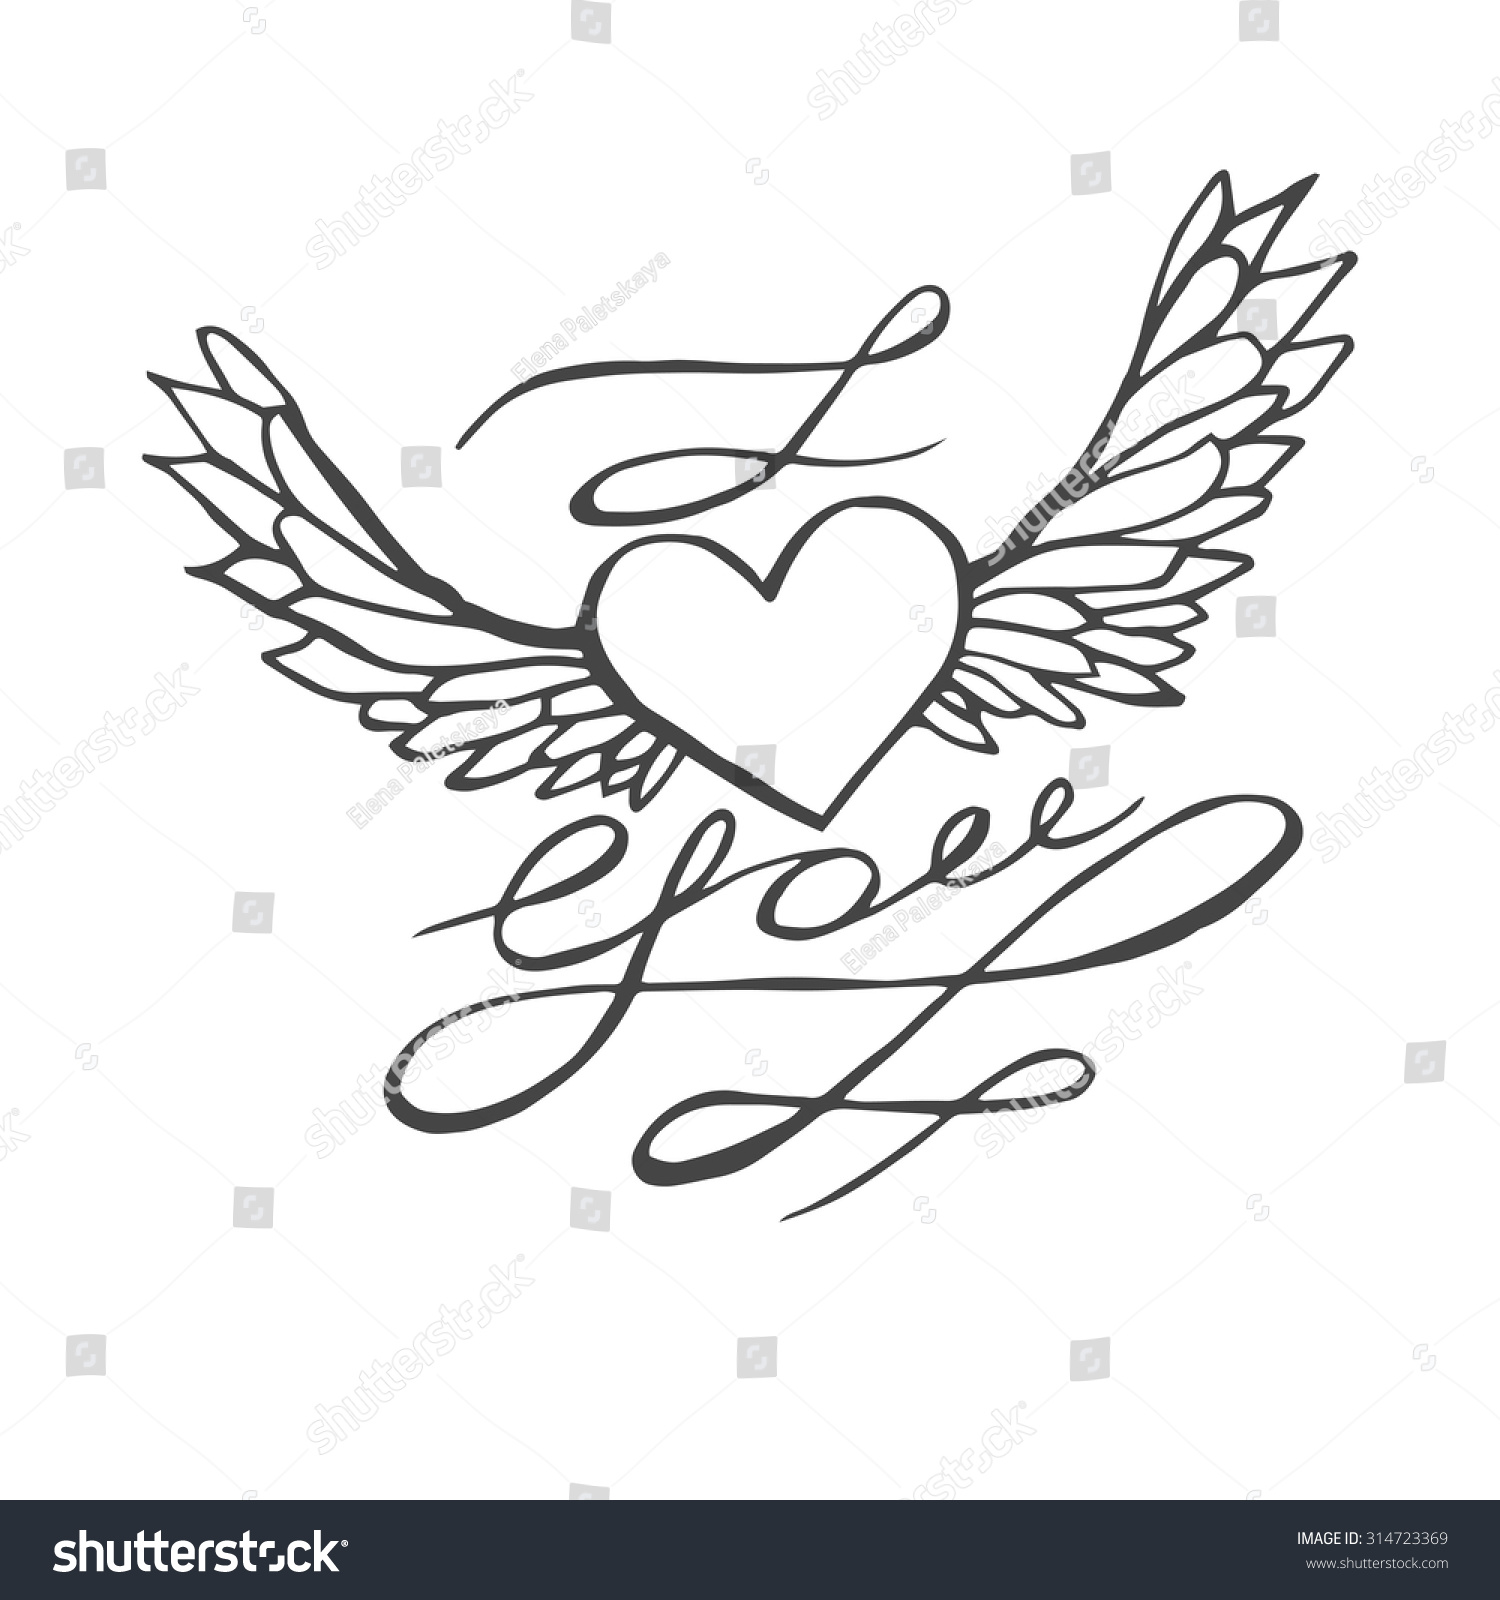 Love You Heart Wings Lettering Romantic Stock Vector Royalty Free 314723369